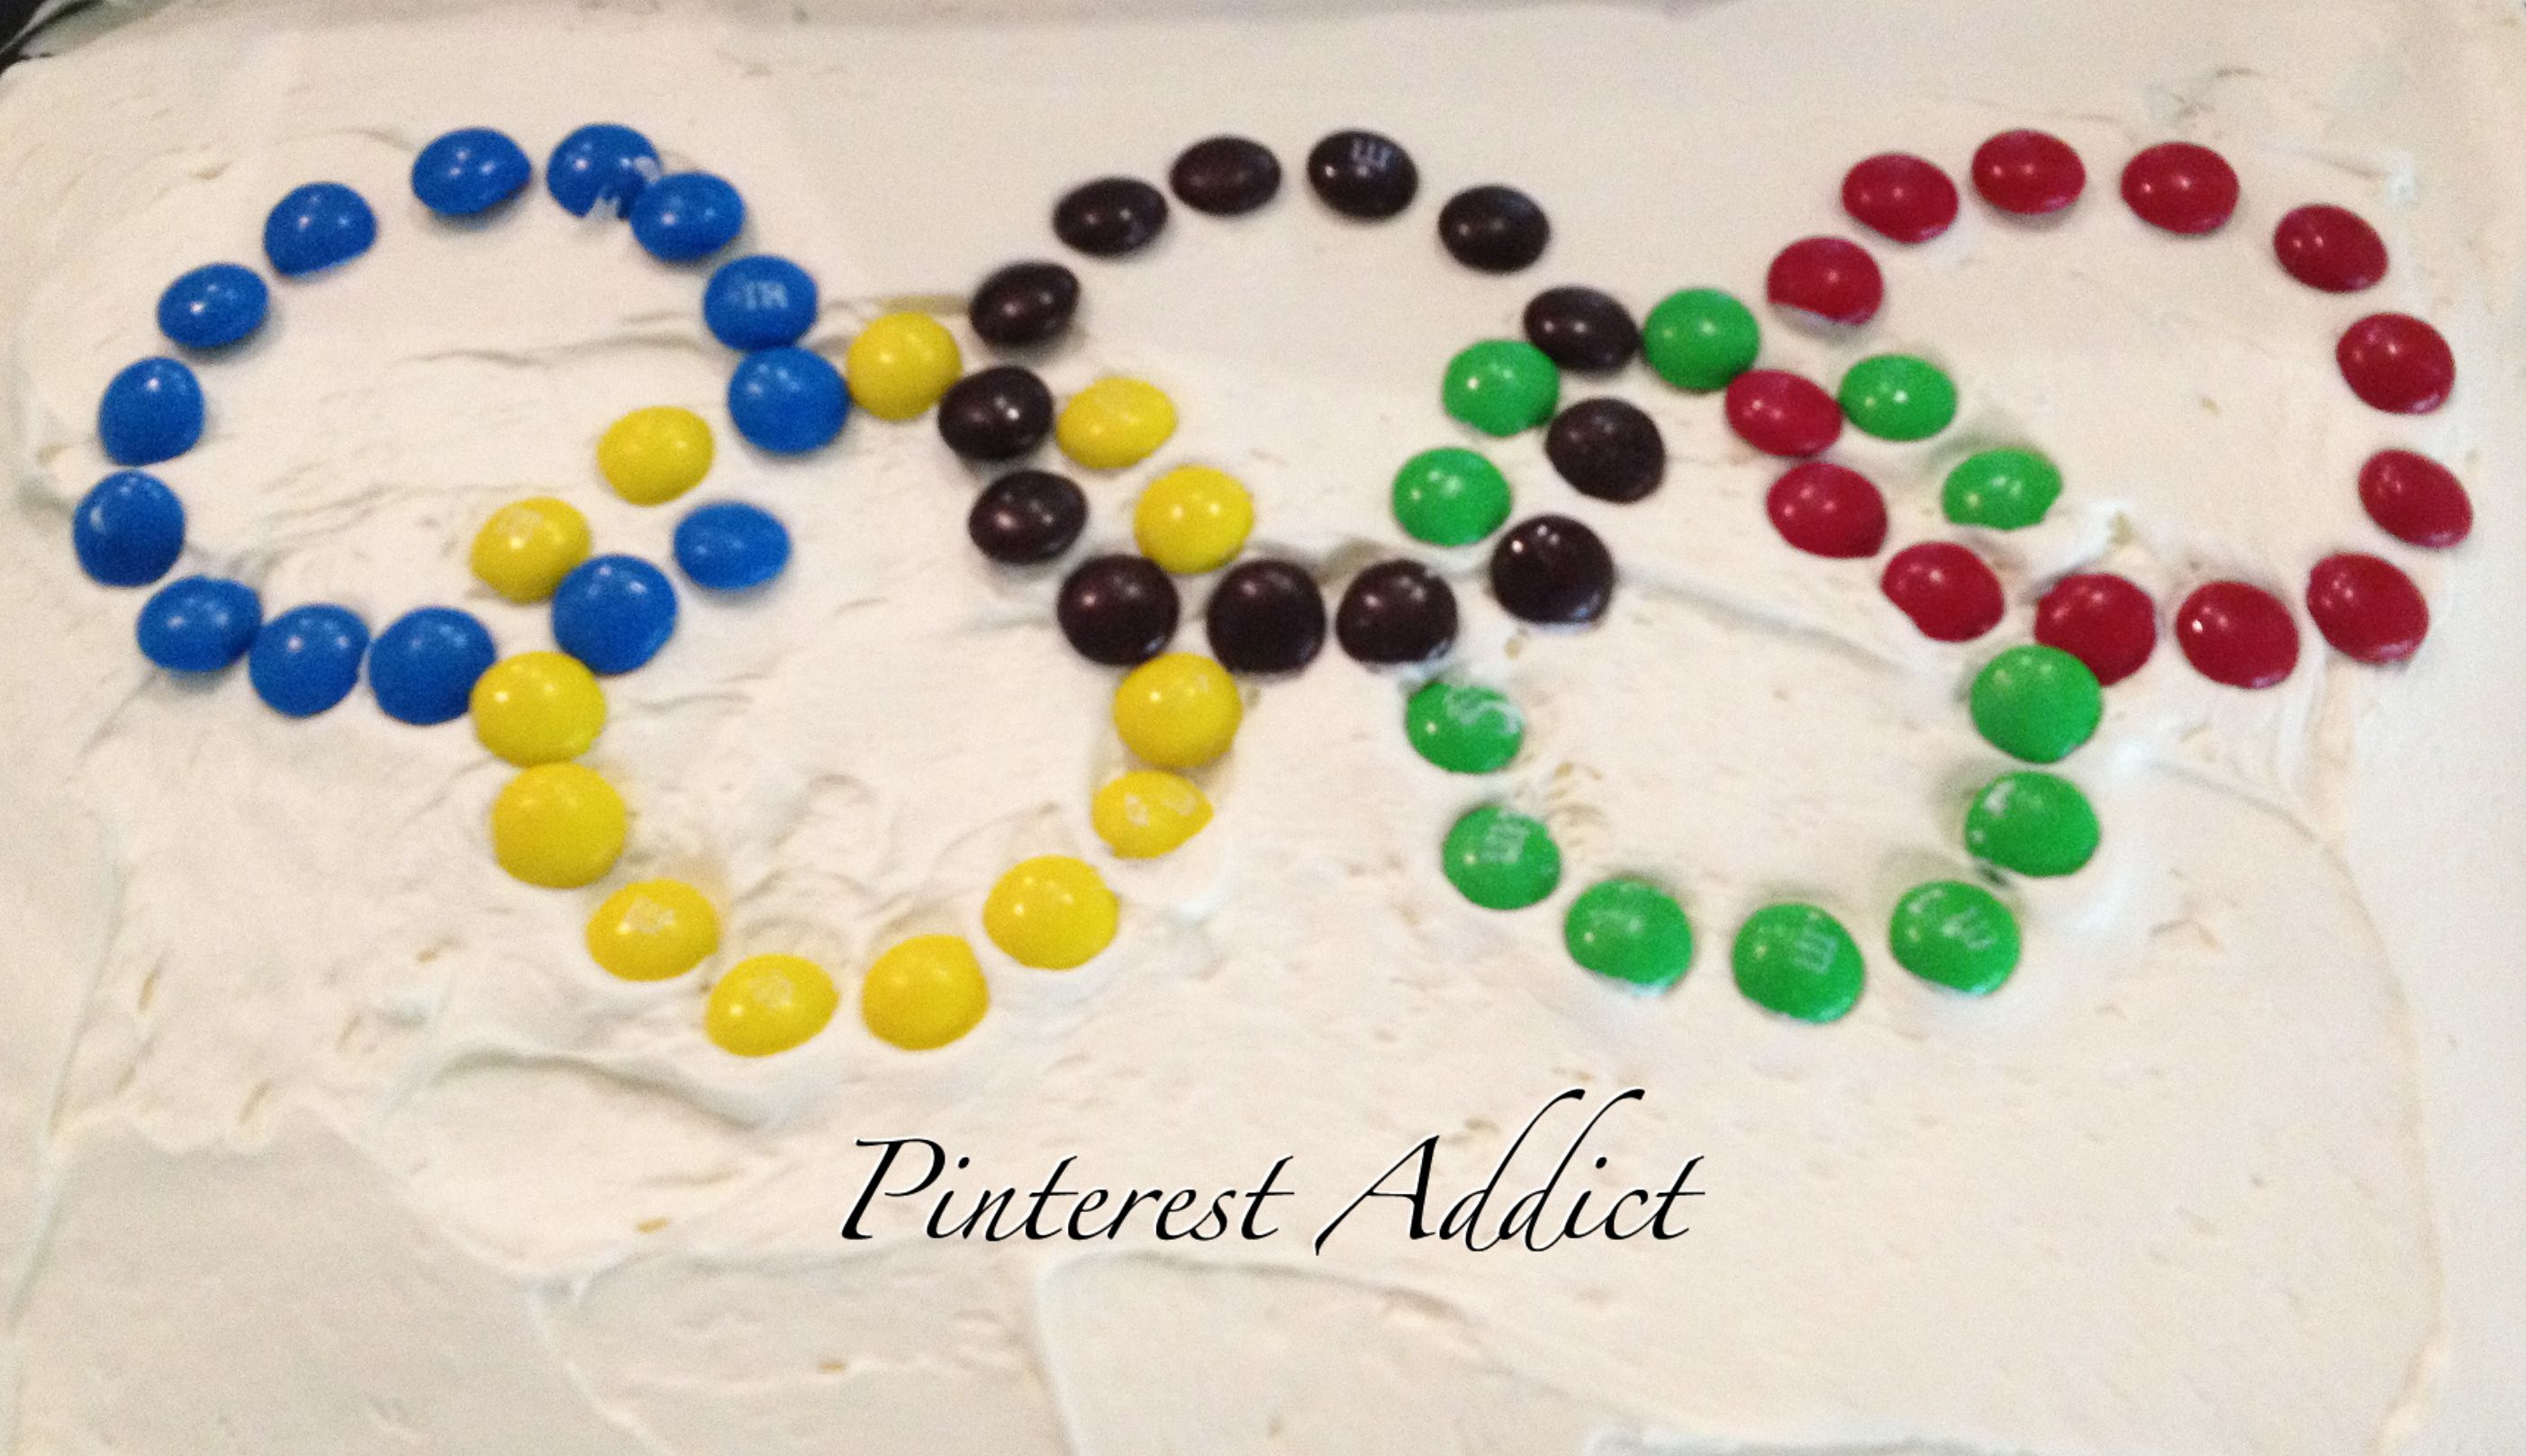 Olympic Themed Birthday Party Pinterest Addict